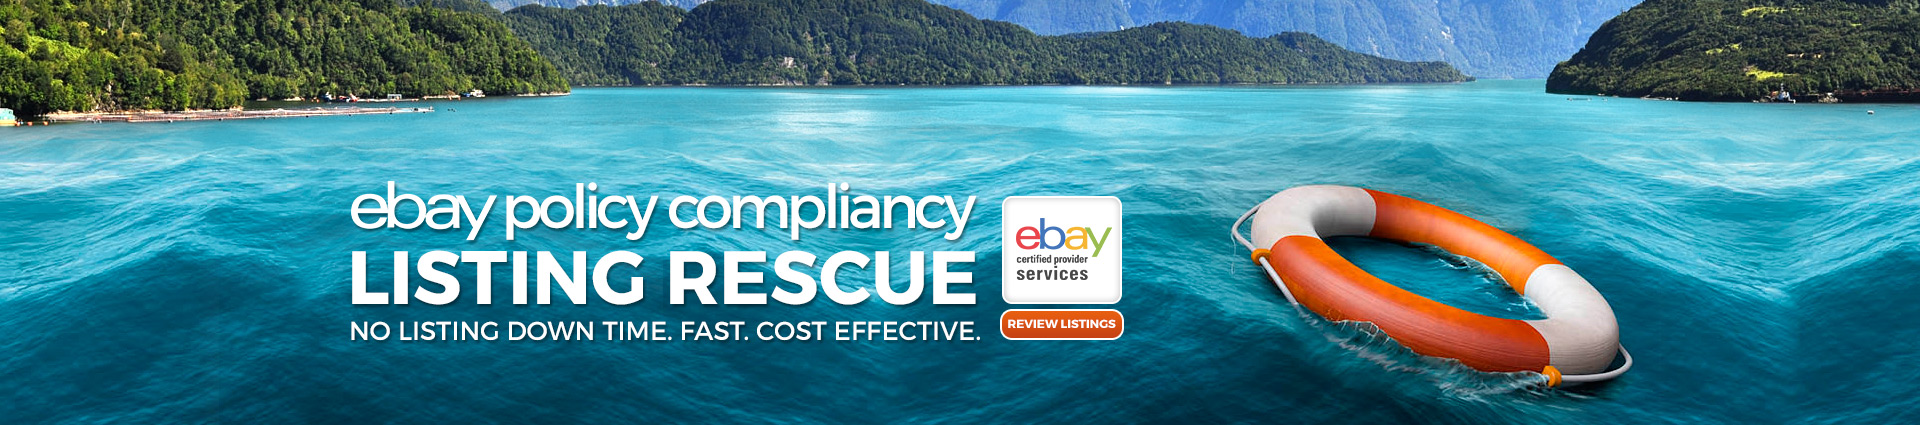 eBay Policy Compliancy Listing Rescue: No Listing Downtime. Fast. Cost Effective